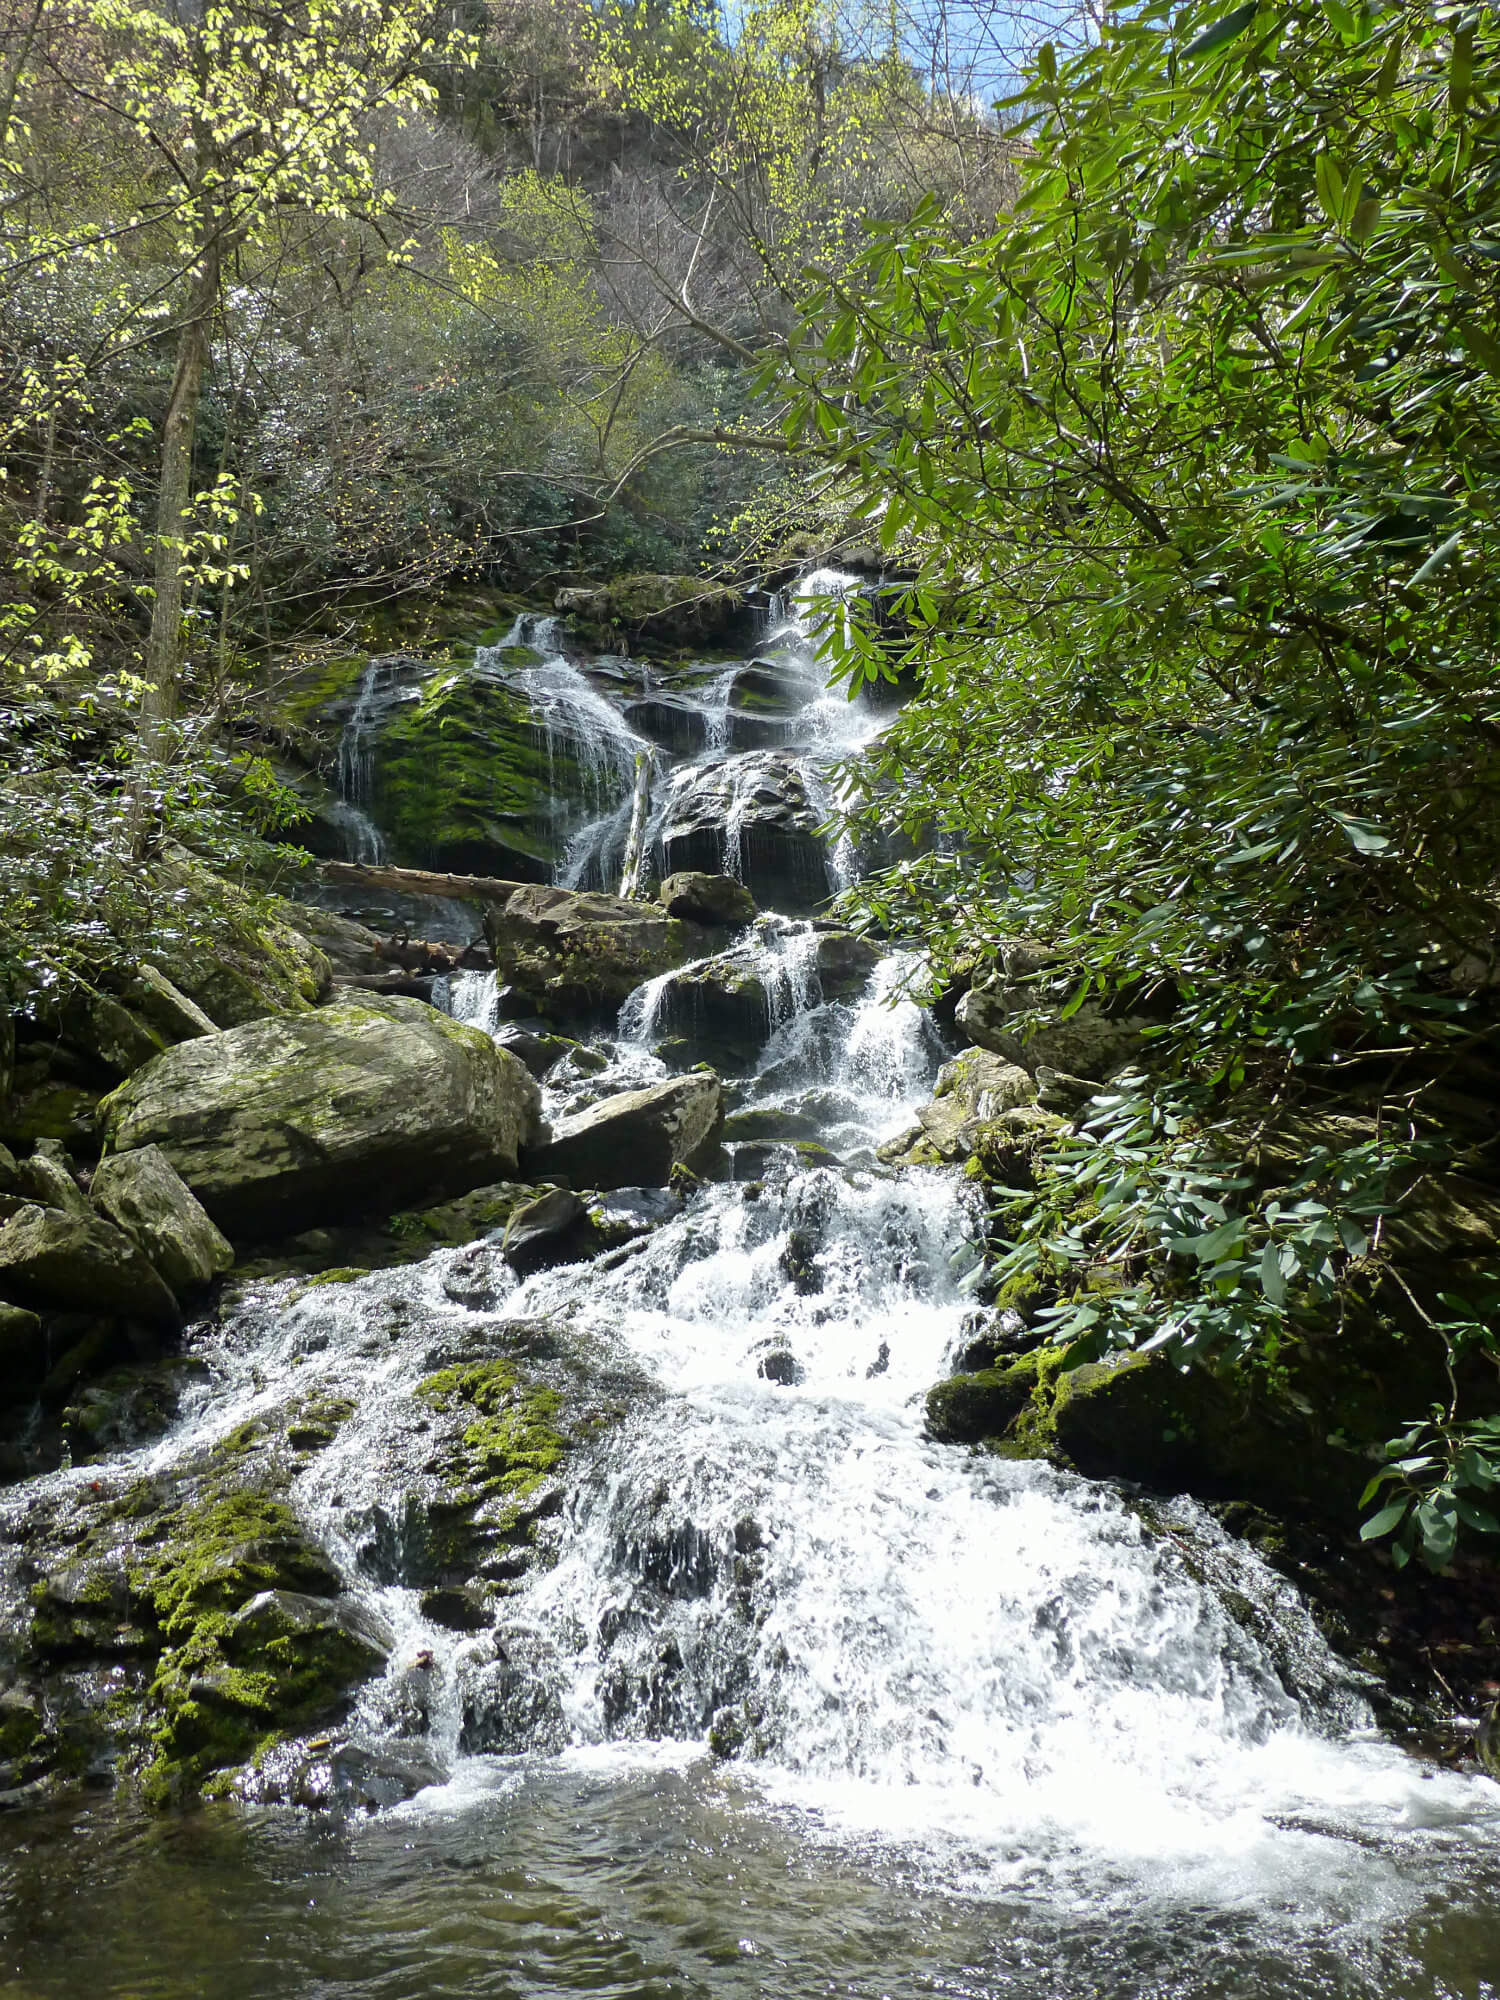 Large waterfall with water cascading down several boulders with trees around it that are just getting their leaves